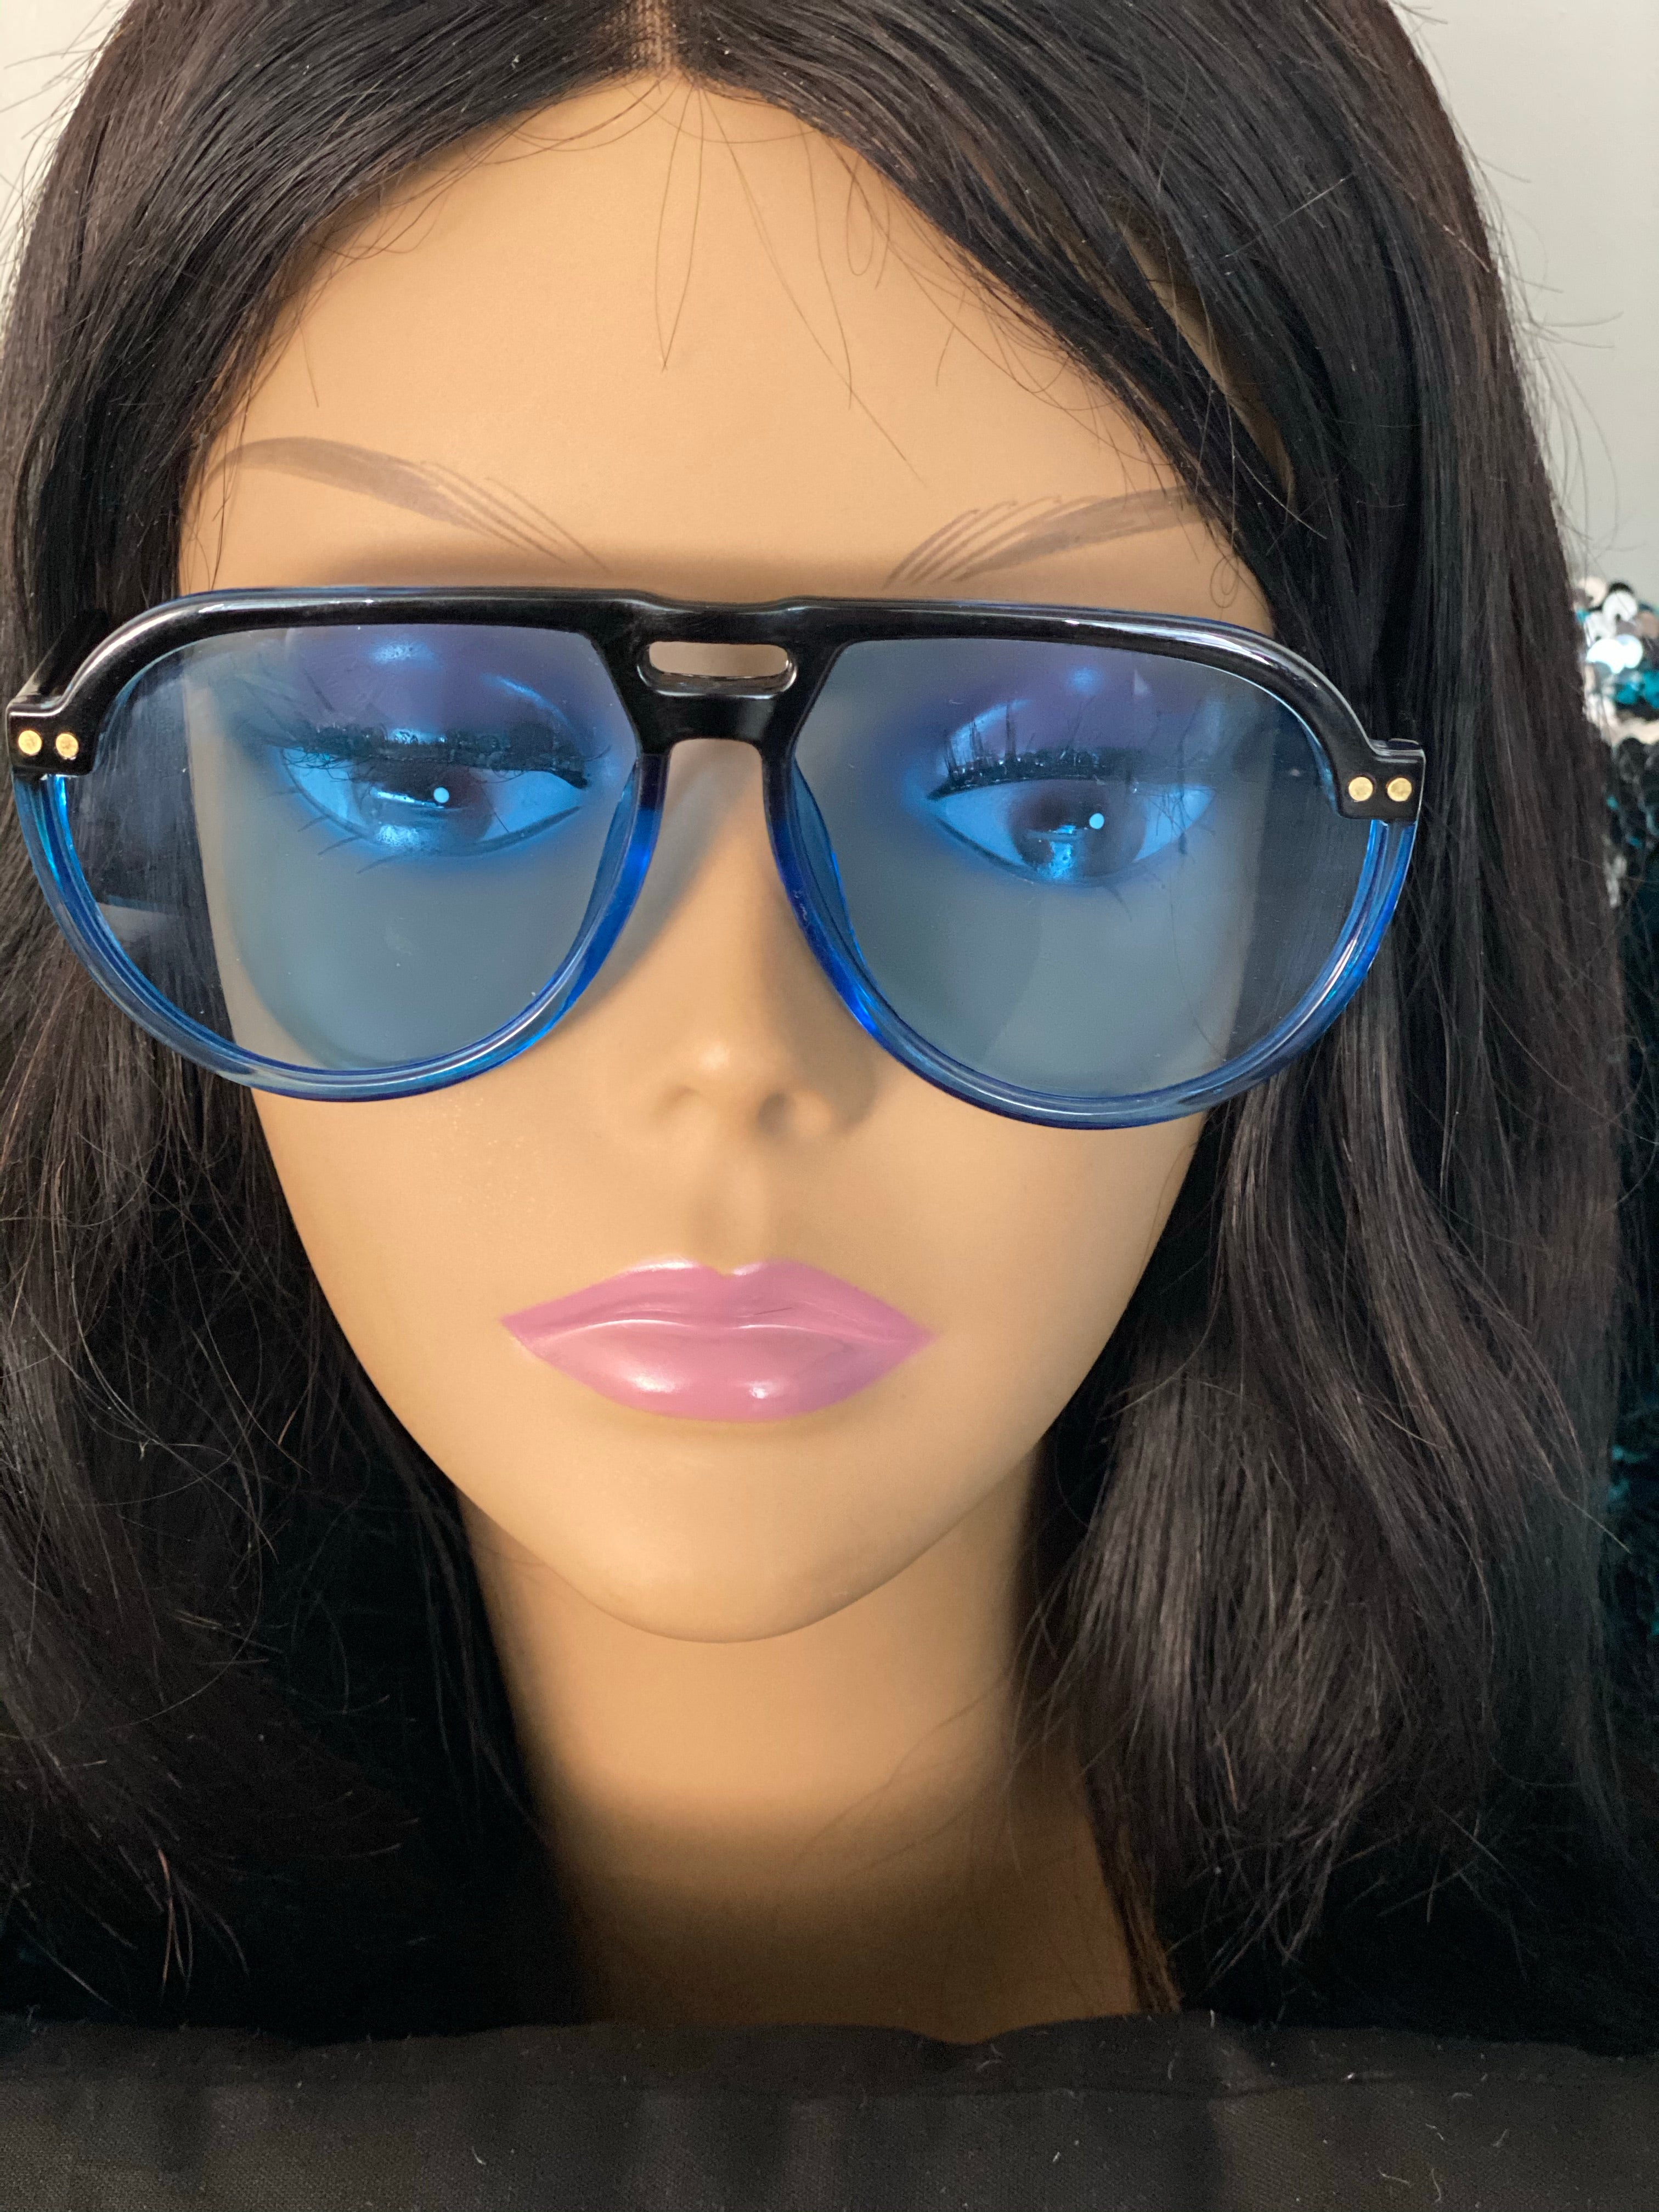 New You Sunglasses